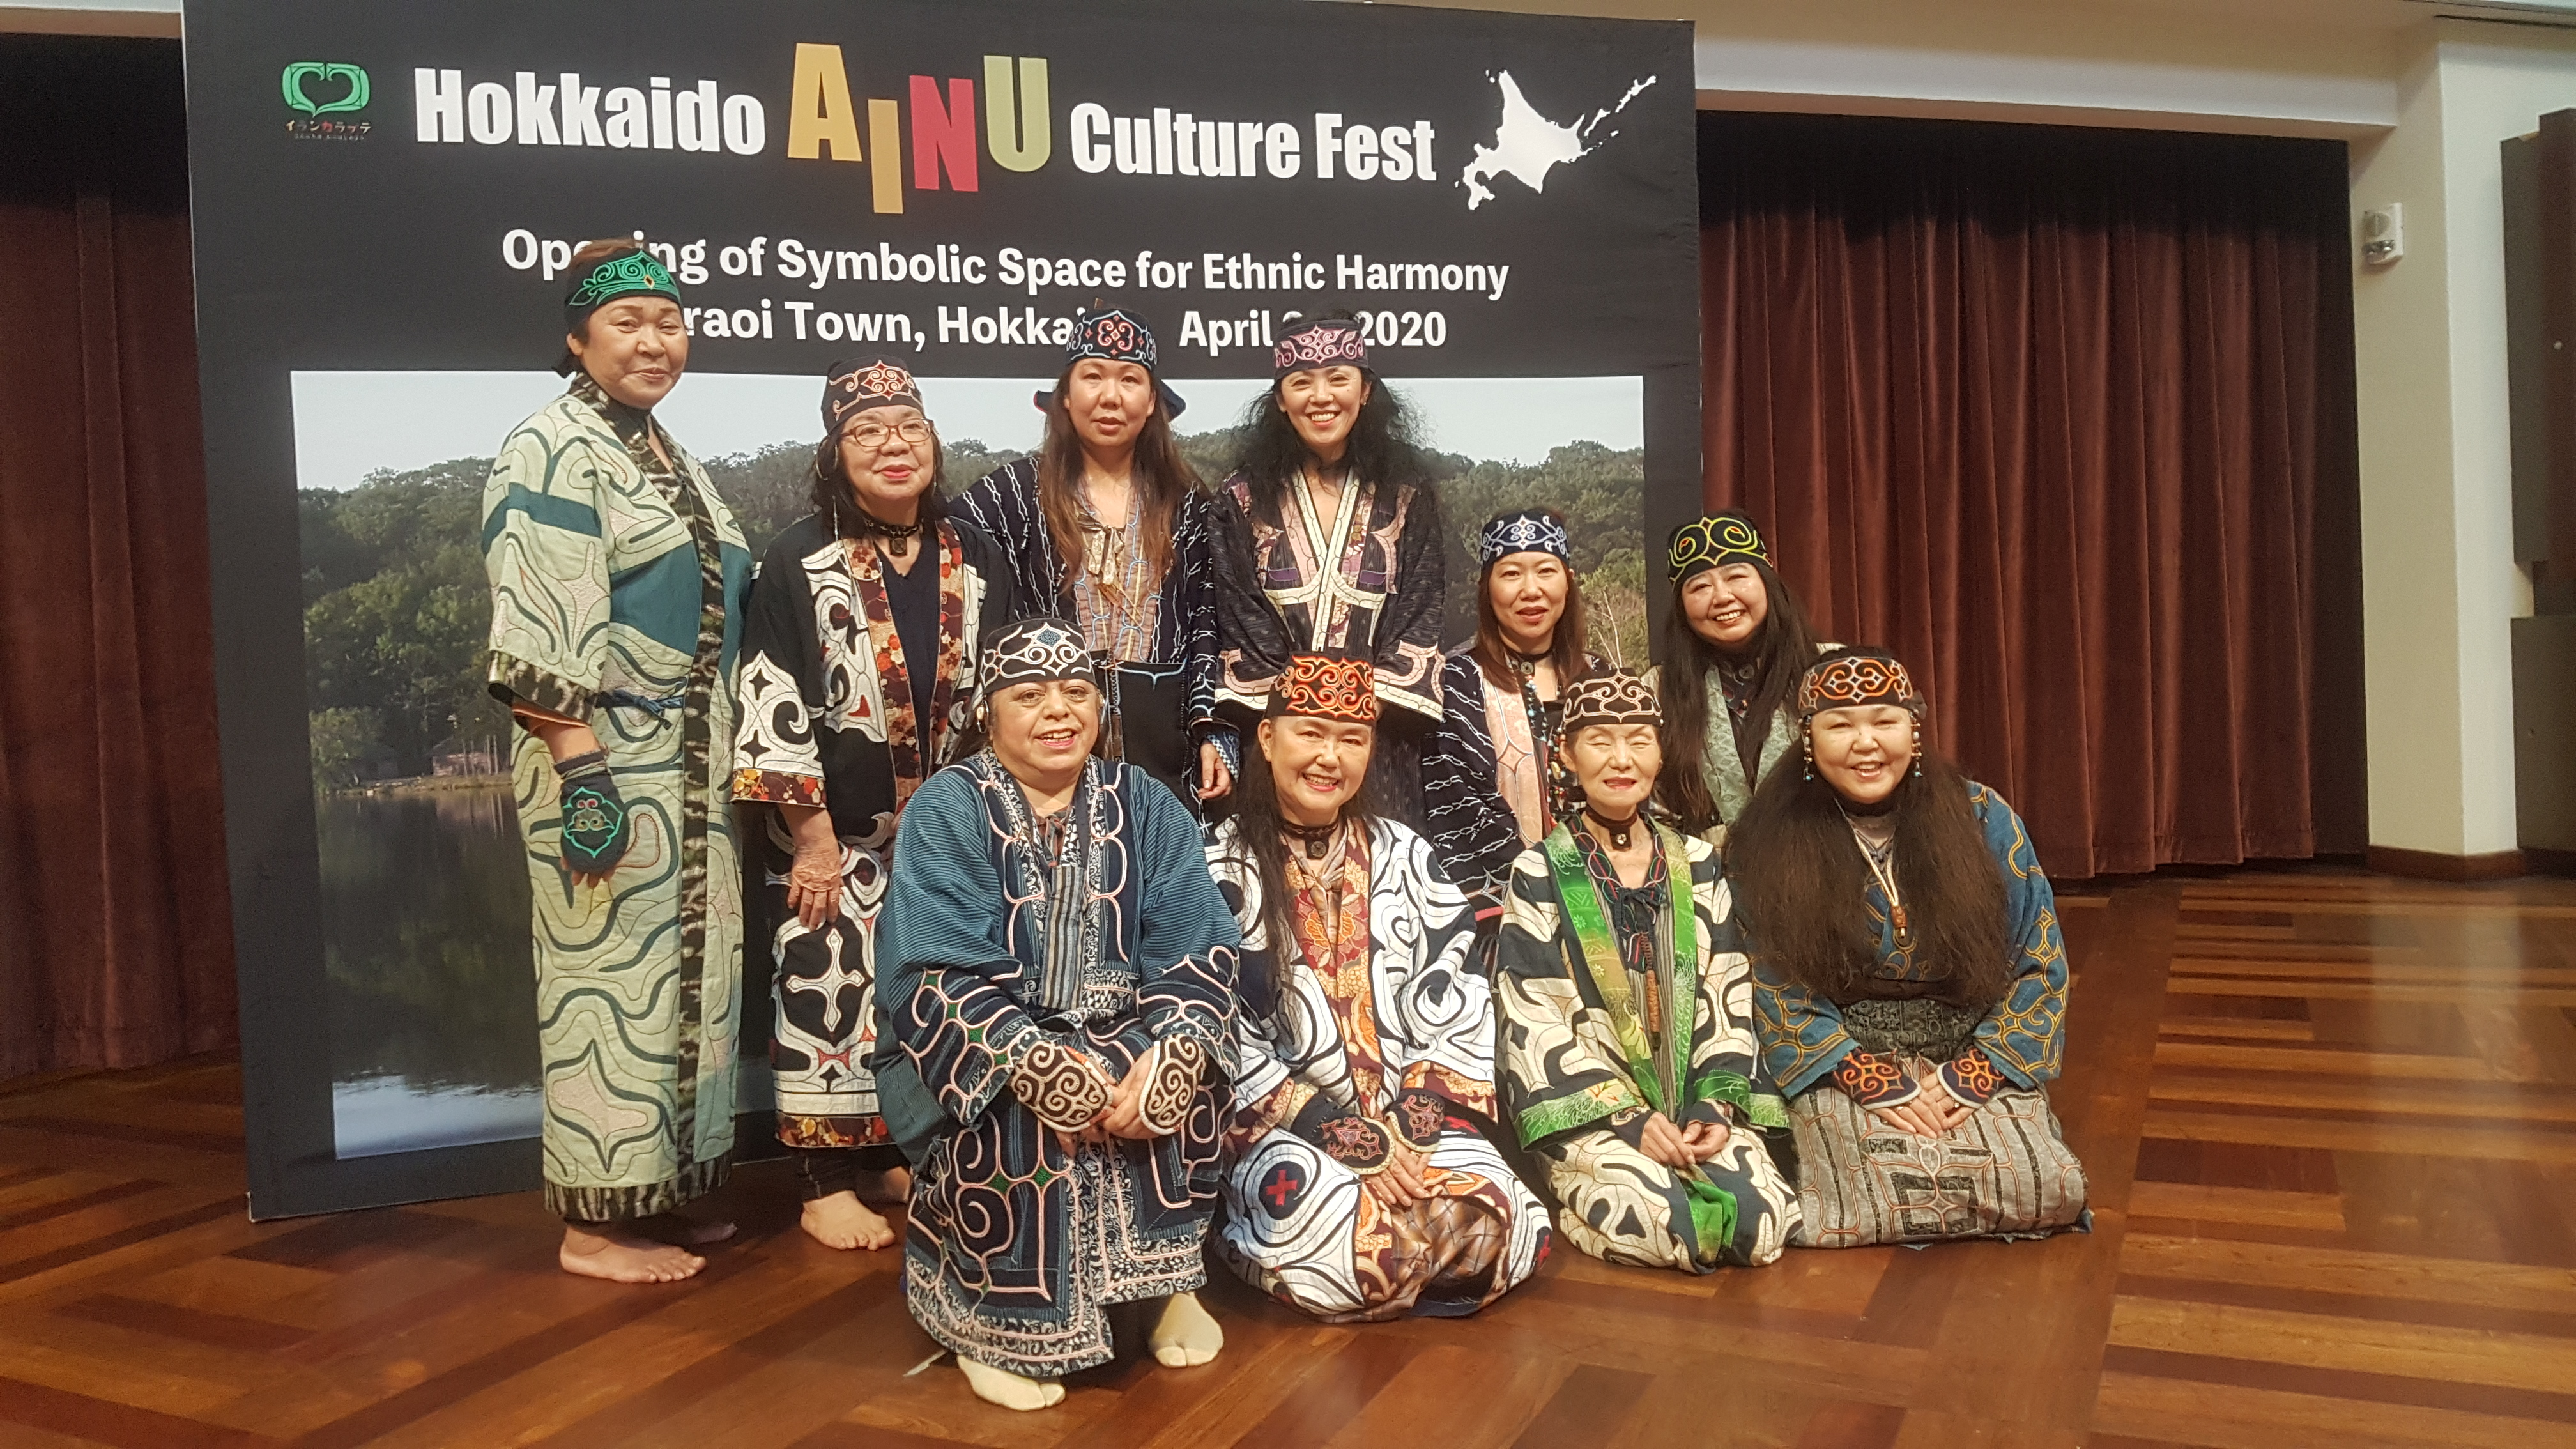 "The ten women from the performance group poses on the stage, in front of a poster with the words ""Hokkaido Ainu Culture Fest."" Words in smaller fonts, with parts blocked by the standing performers, read ""Opening of Symbolic Space for Ethnic Harmony, Shiraoi Town, Hokkaido, April 24, 2020."" The back row has four women standing and two kneeling on the right, and the front row has four women kneeling. They are dressed in dark blue robes embroidered in colorful threads and cloths."